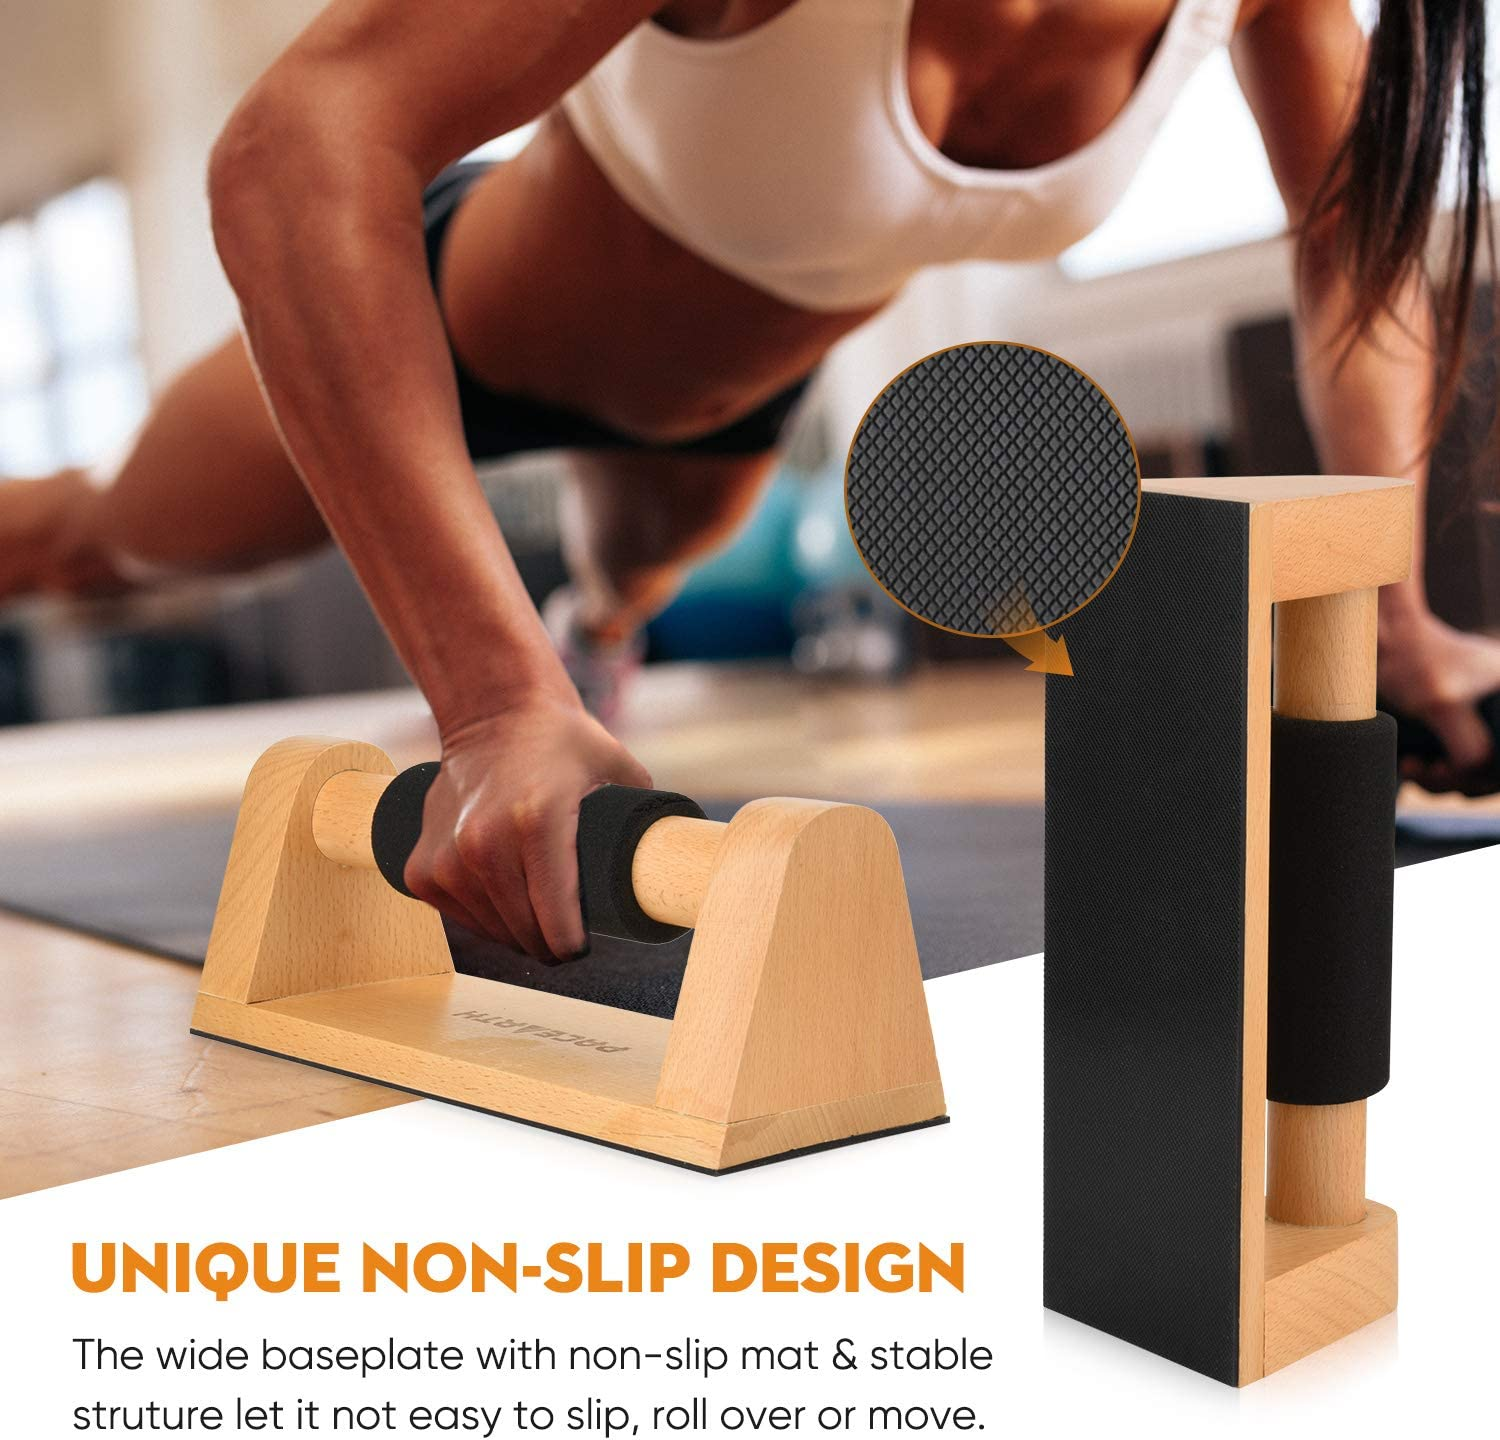 Set of 2 PACEARTH Wood Push Up Bars for Men and Women Push Up Stand with Non-Slip Comfortable Rubber Grip Sturdy Pushup Stands for Home Gym Fitness Body Building Muscle Training Workout Equipment